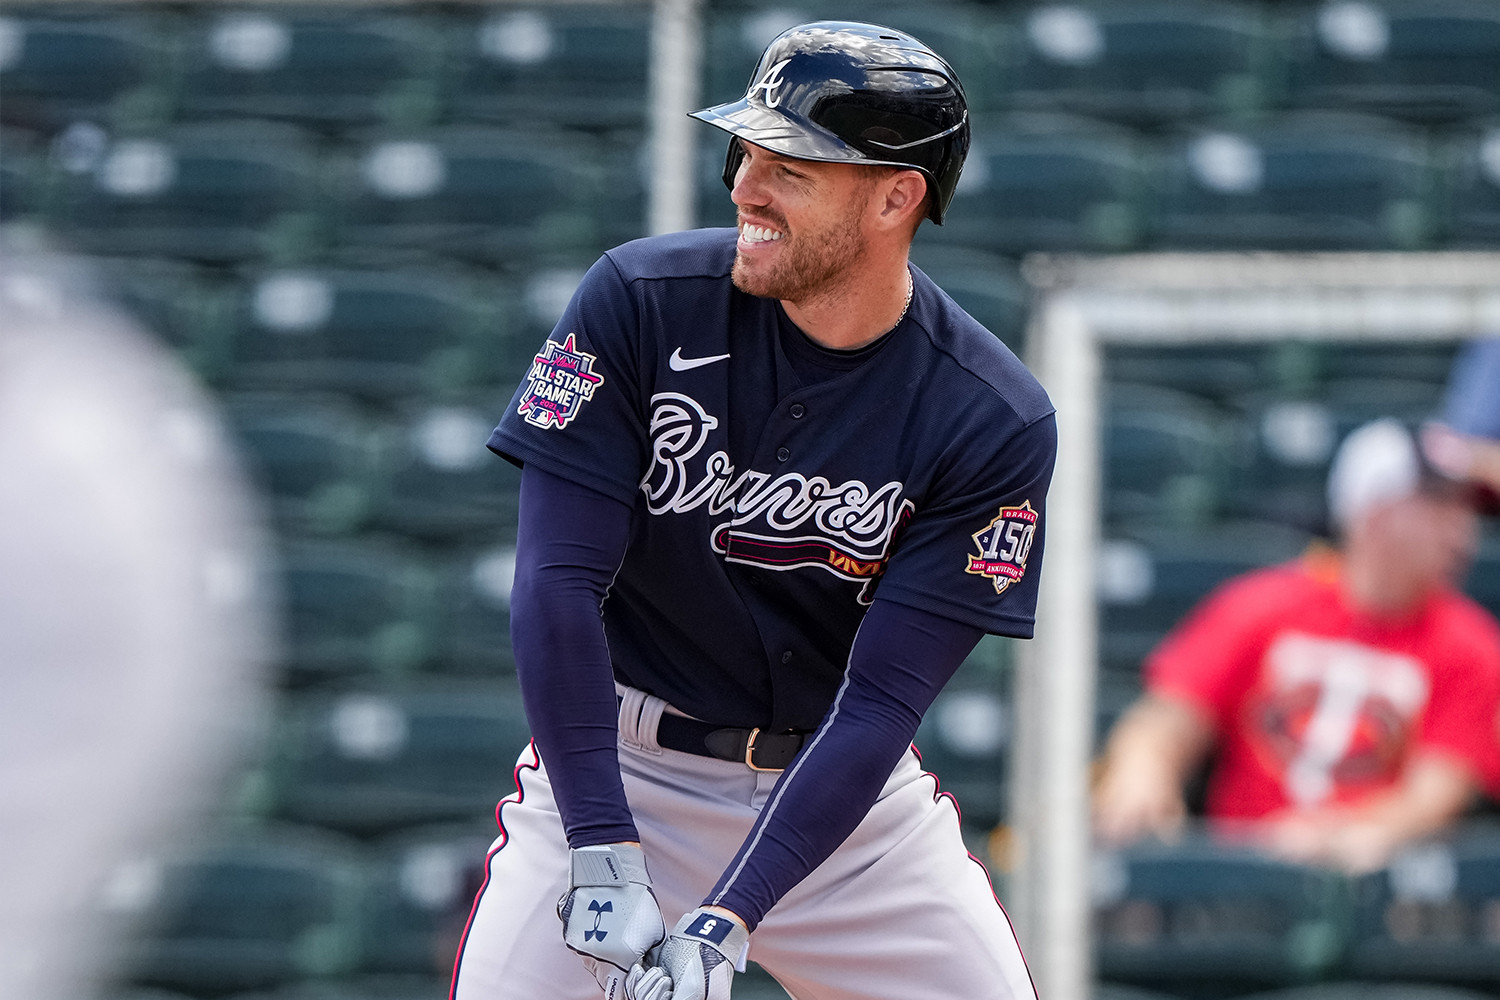 Freddie Freeman #5 of the Atlanta Braves looks on and smiles during a spring training game against the Minnesota Twins